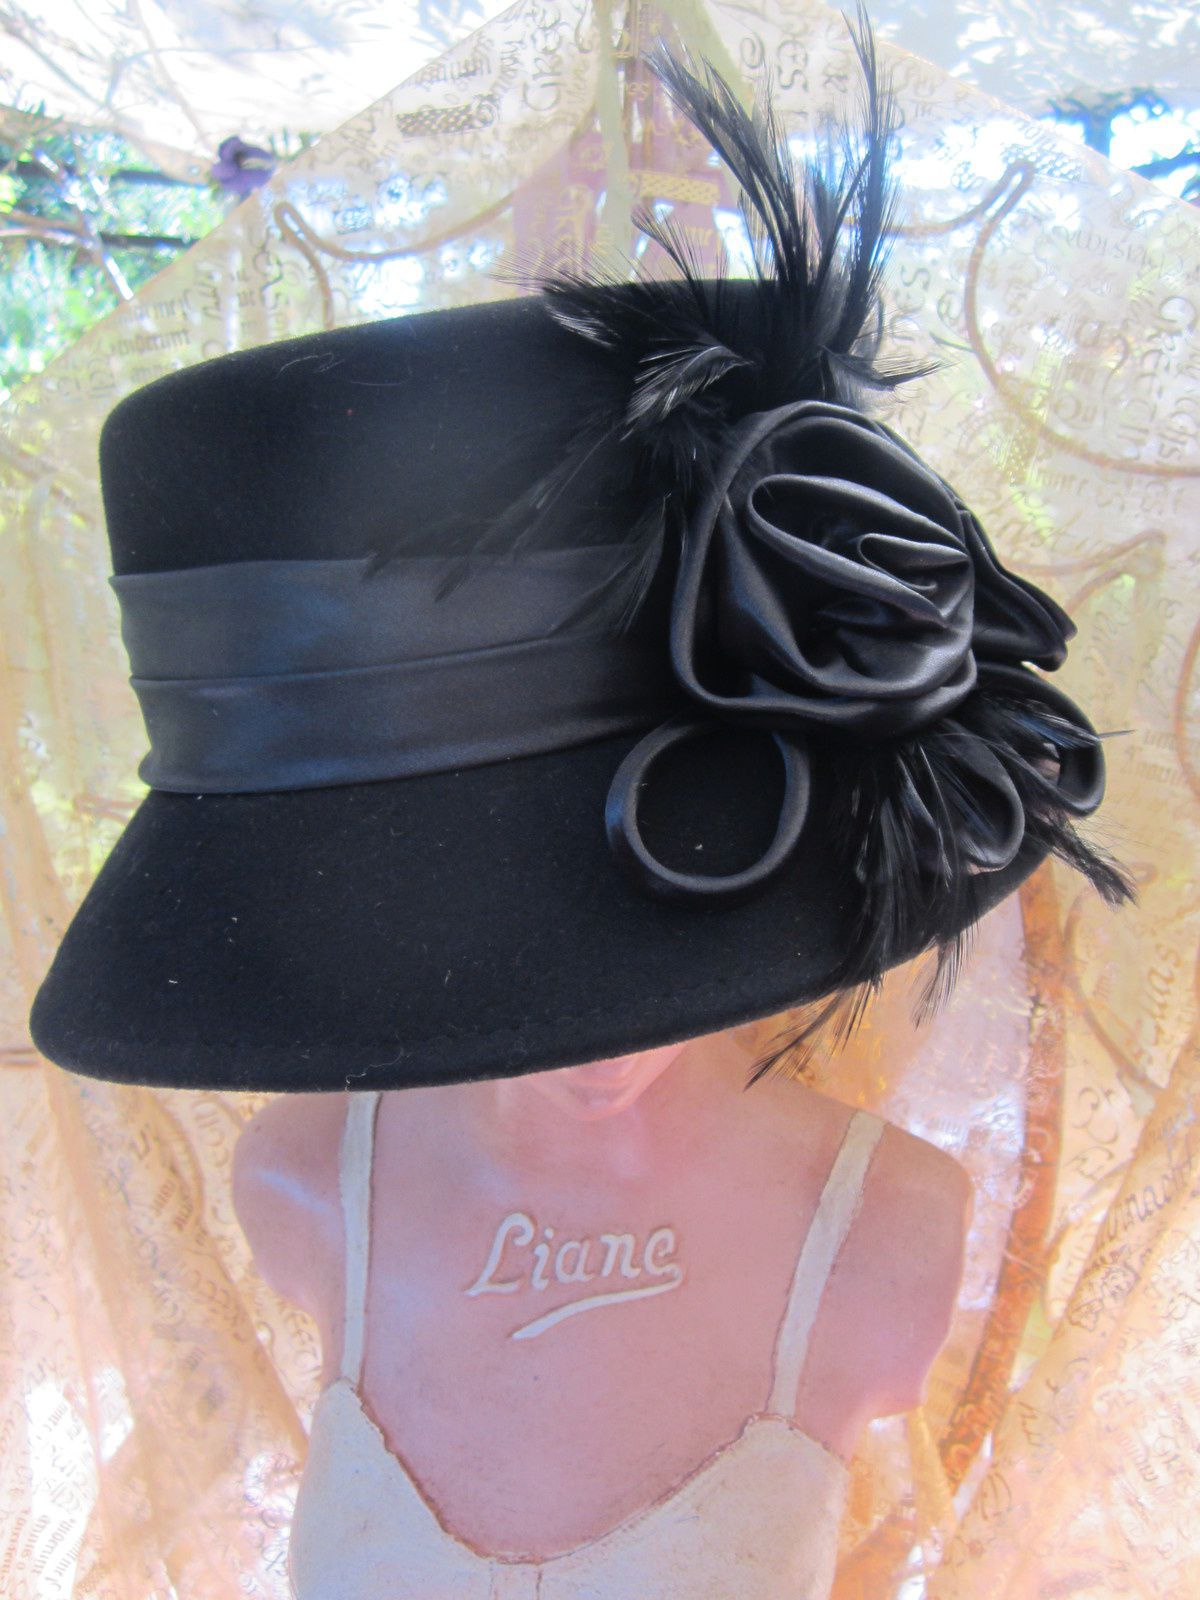 CHAPEAU made in France